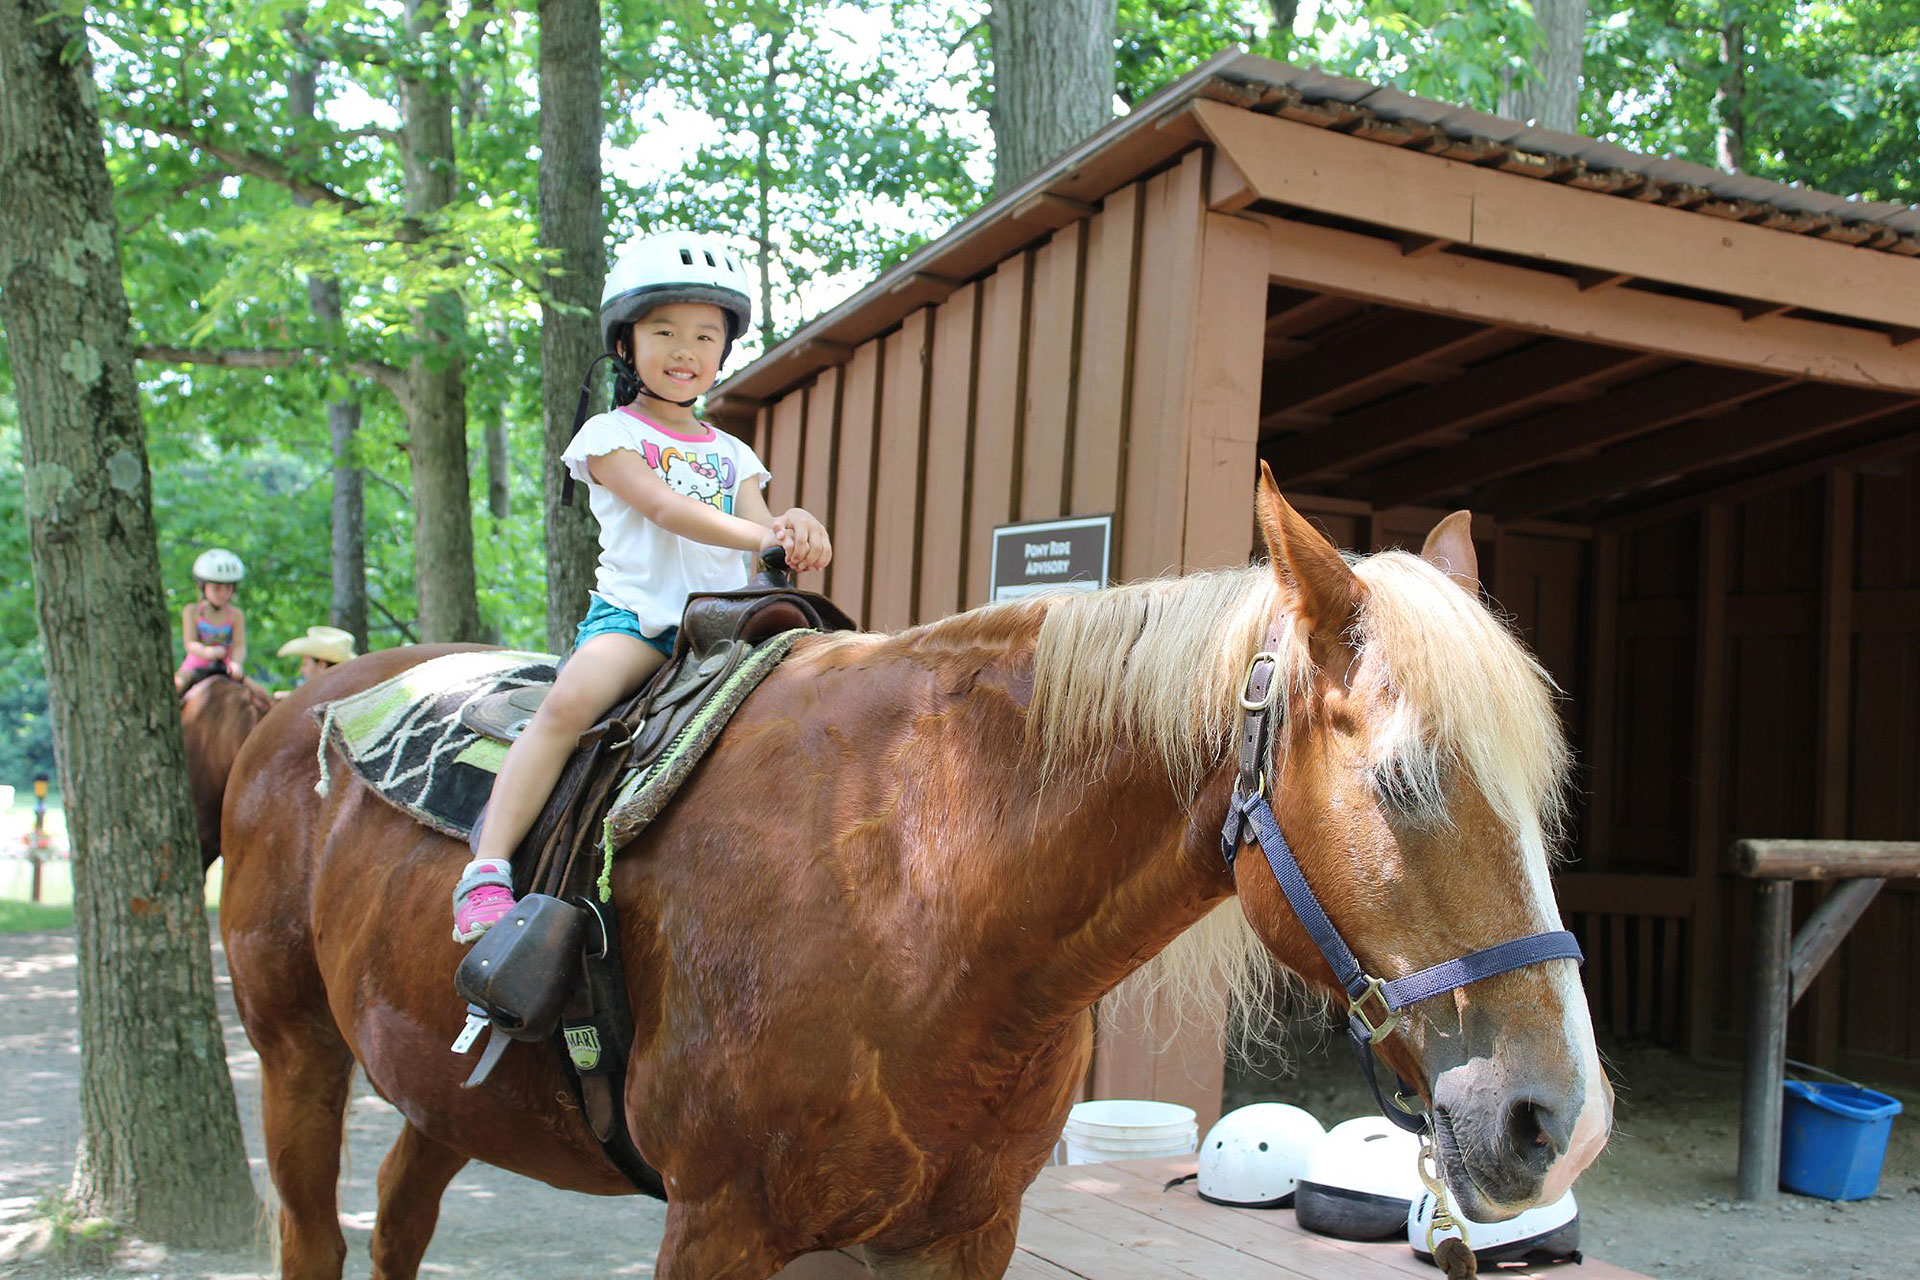 Horseback Riding at Rocking Horse Ranch in New York